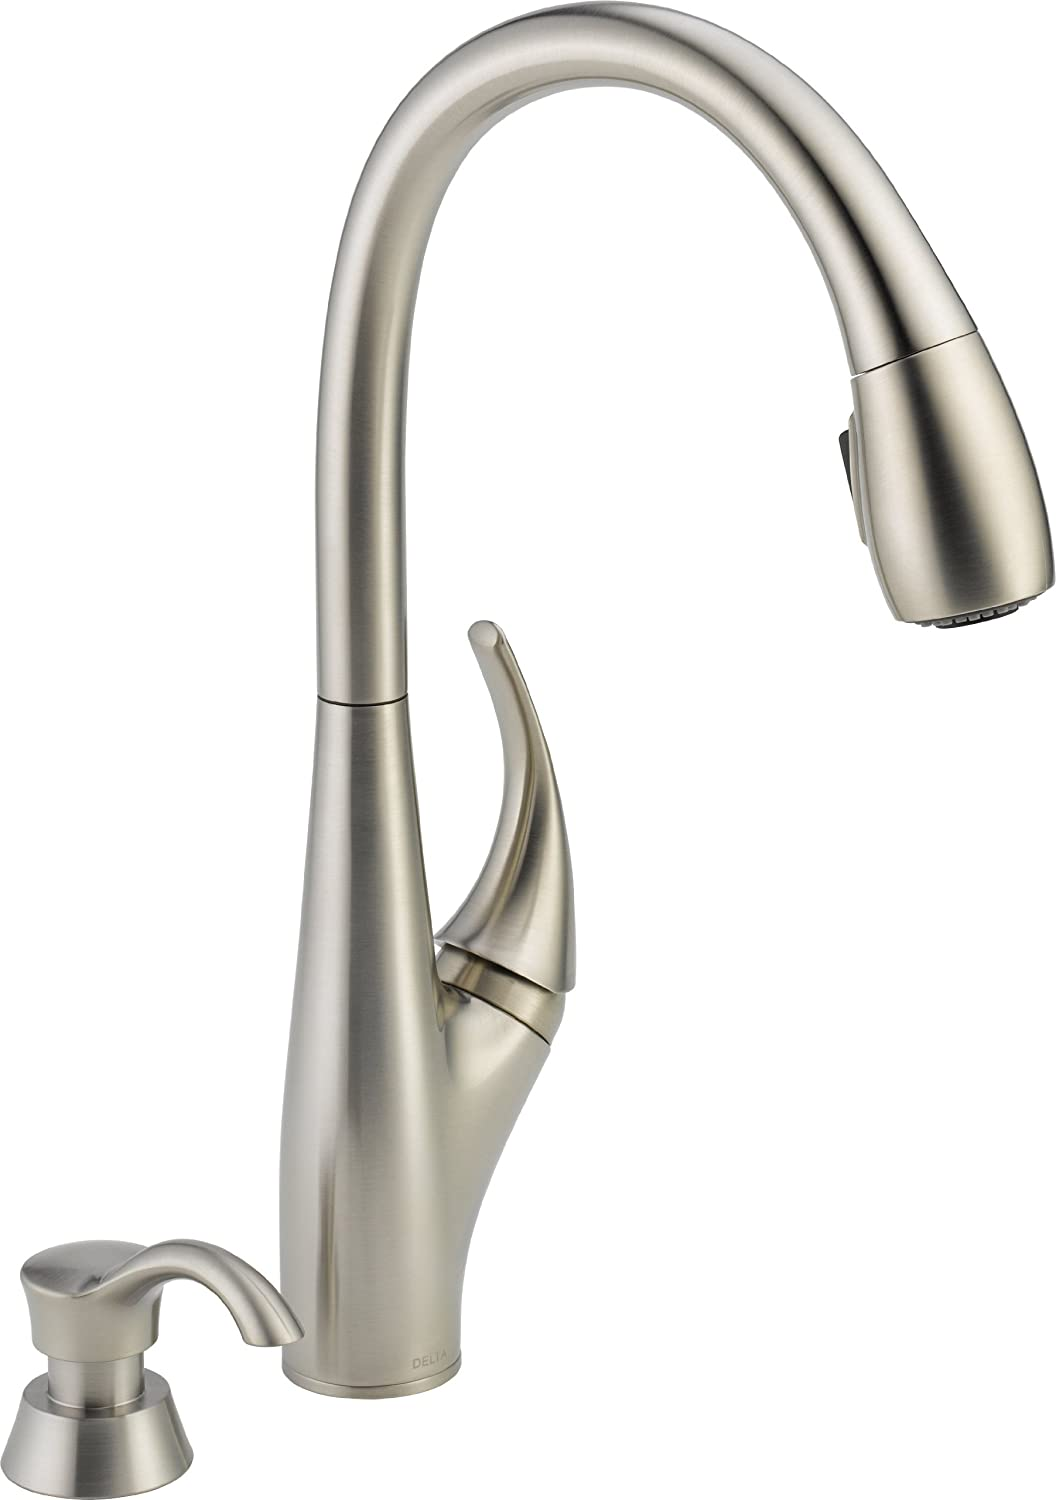 Delta Faucet 19912-SSSD-DST Deluca Single Handle Pull-Down Kitchen Faucet, Stainless